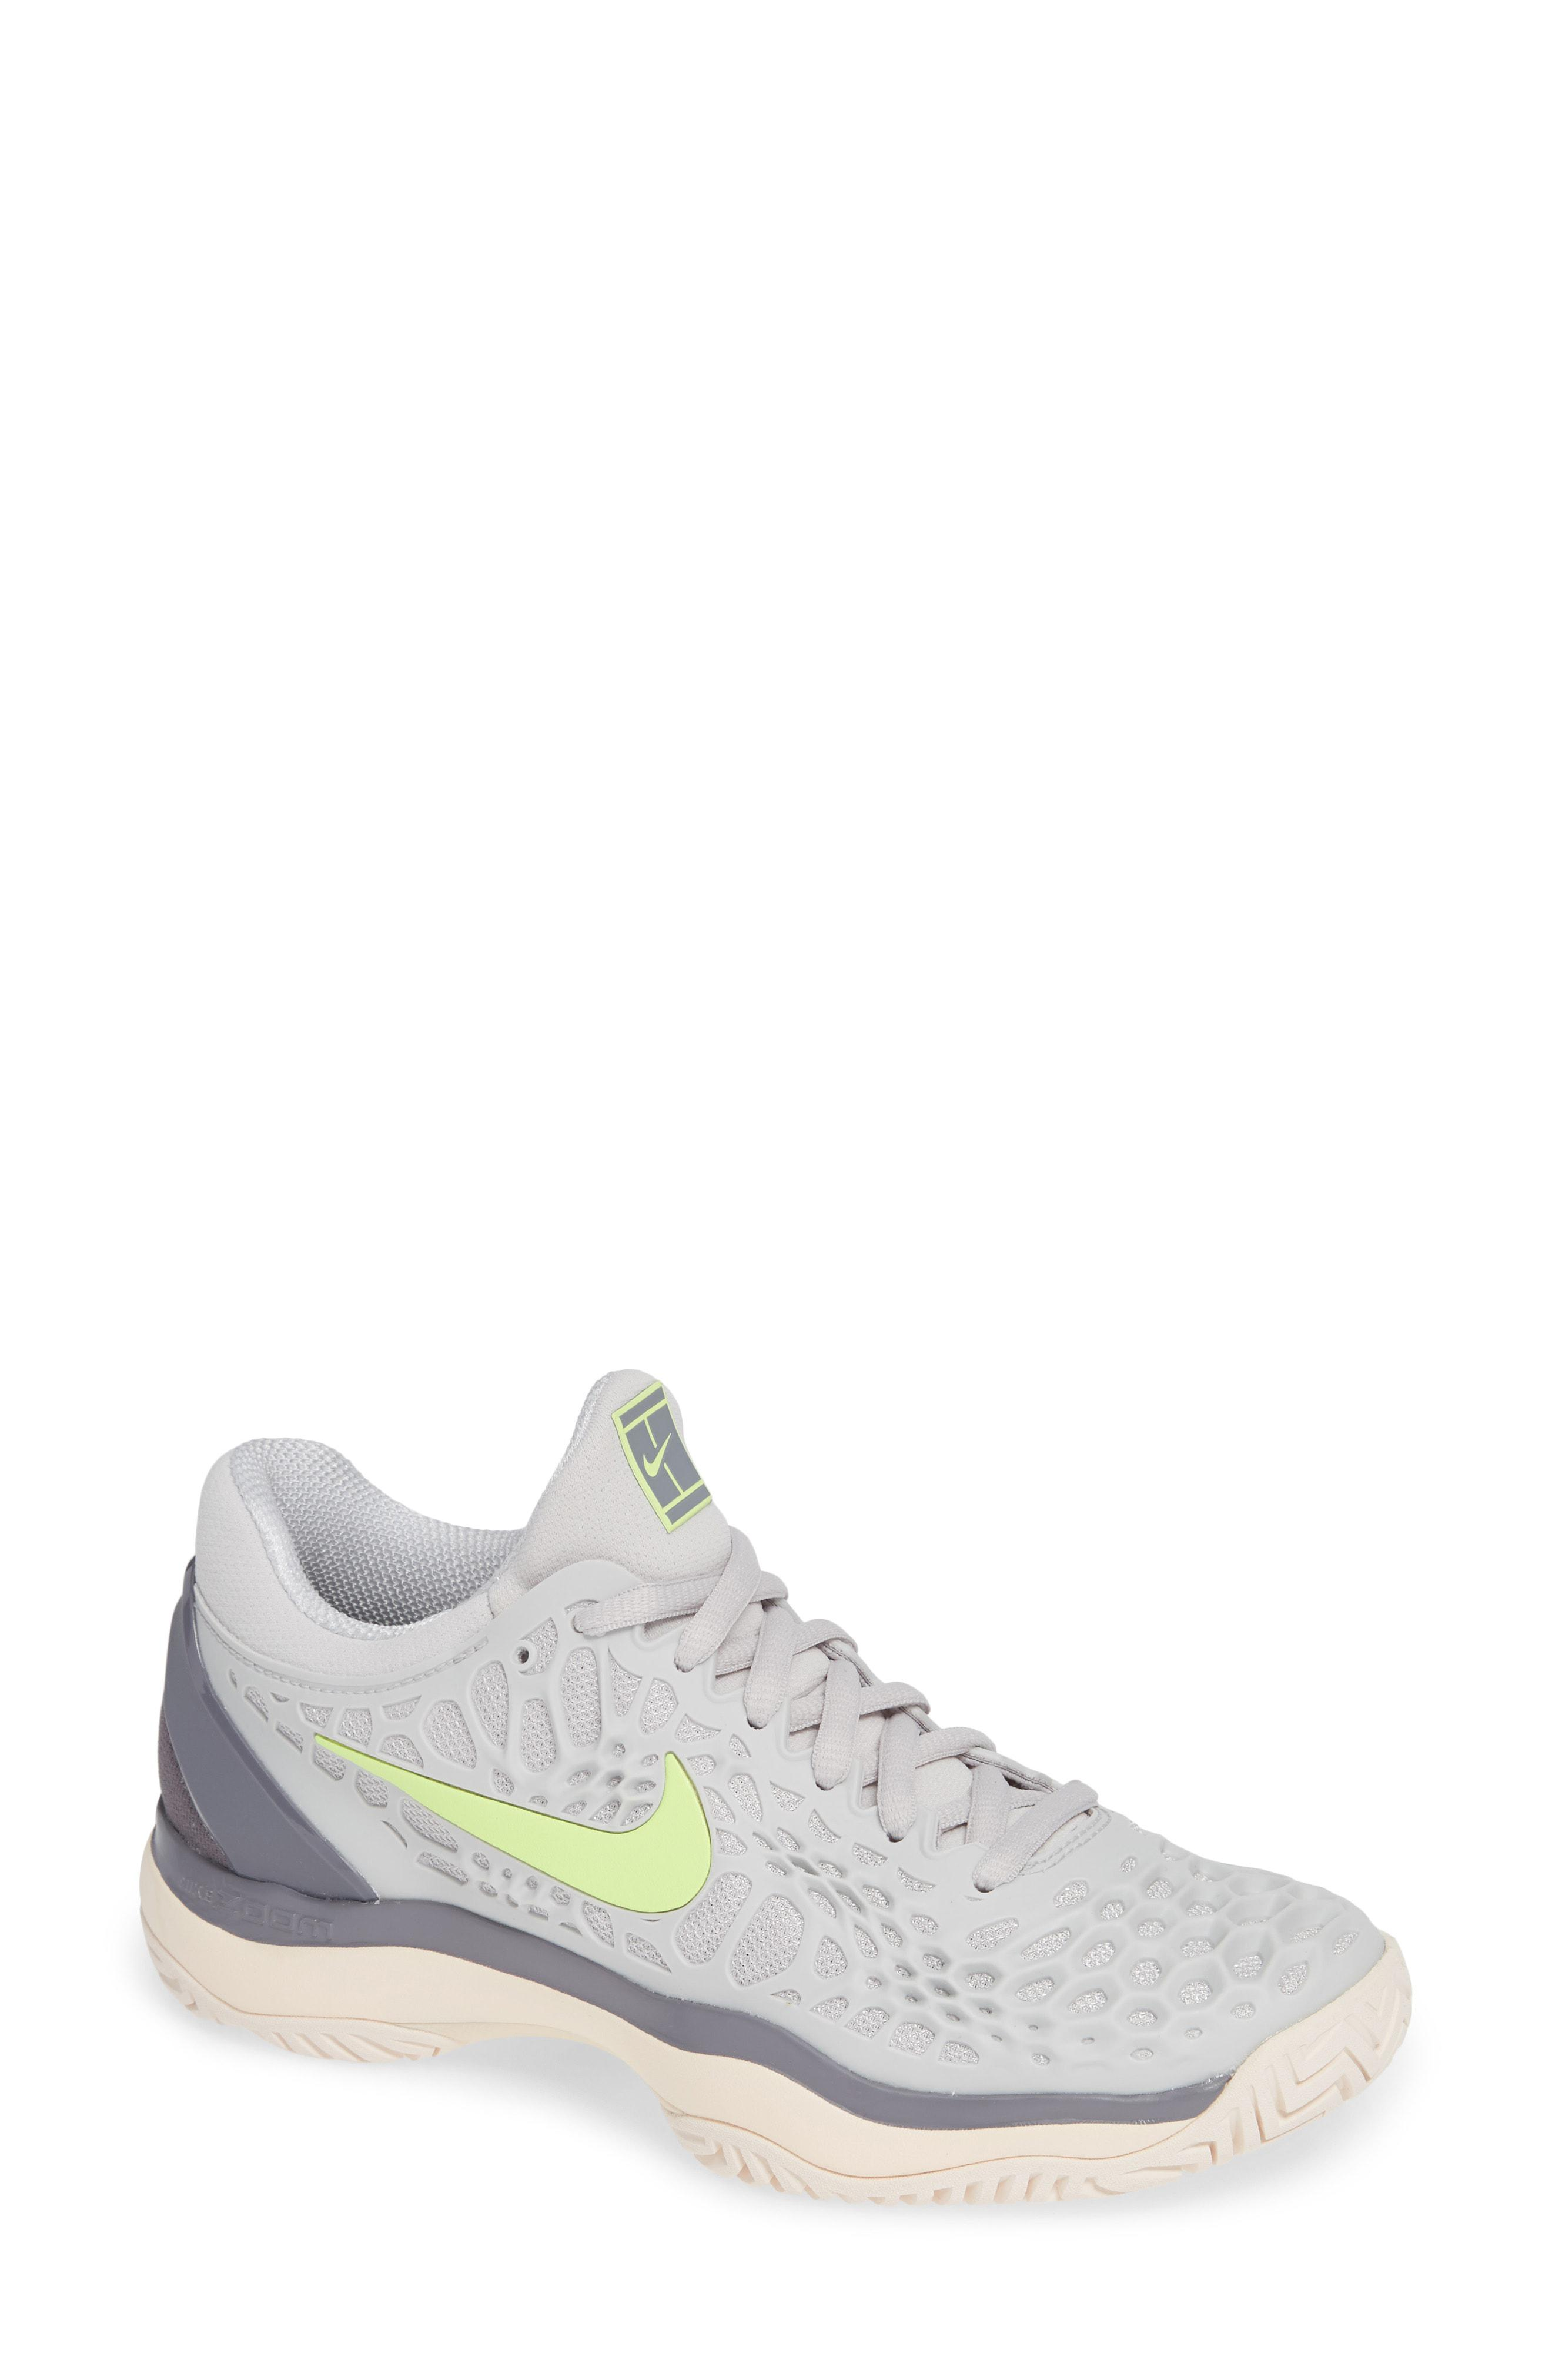 Lyst - Nike Air Zoom Cage 3 Hc Tennis Shoe in White 0715db8f1